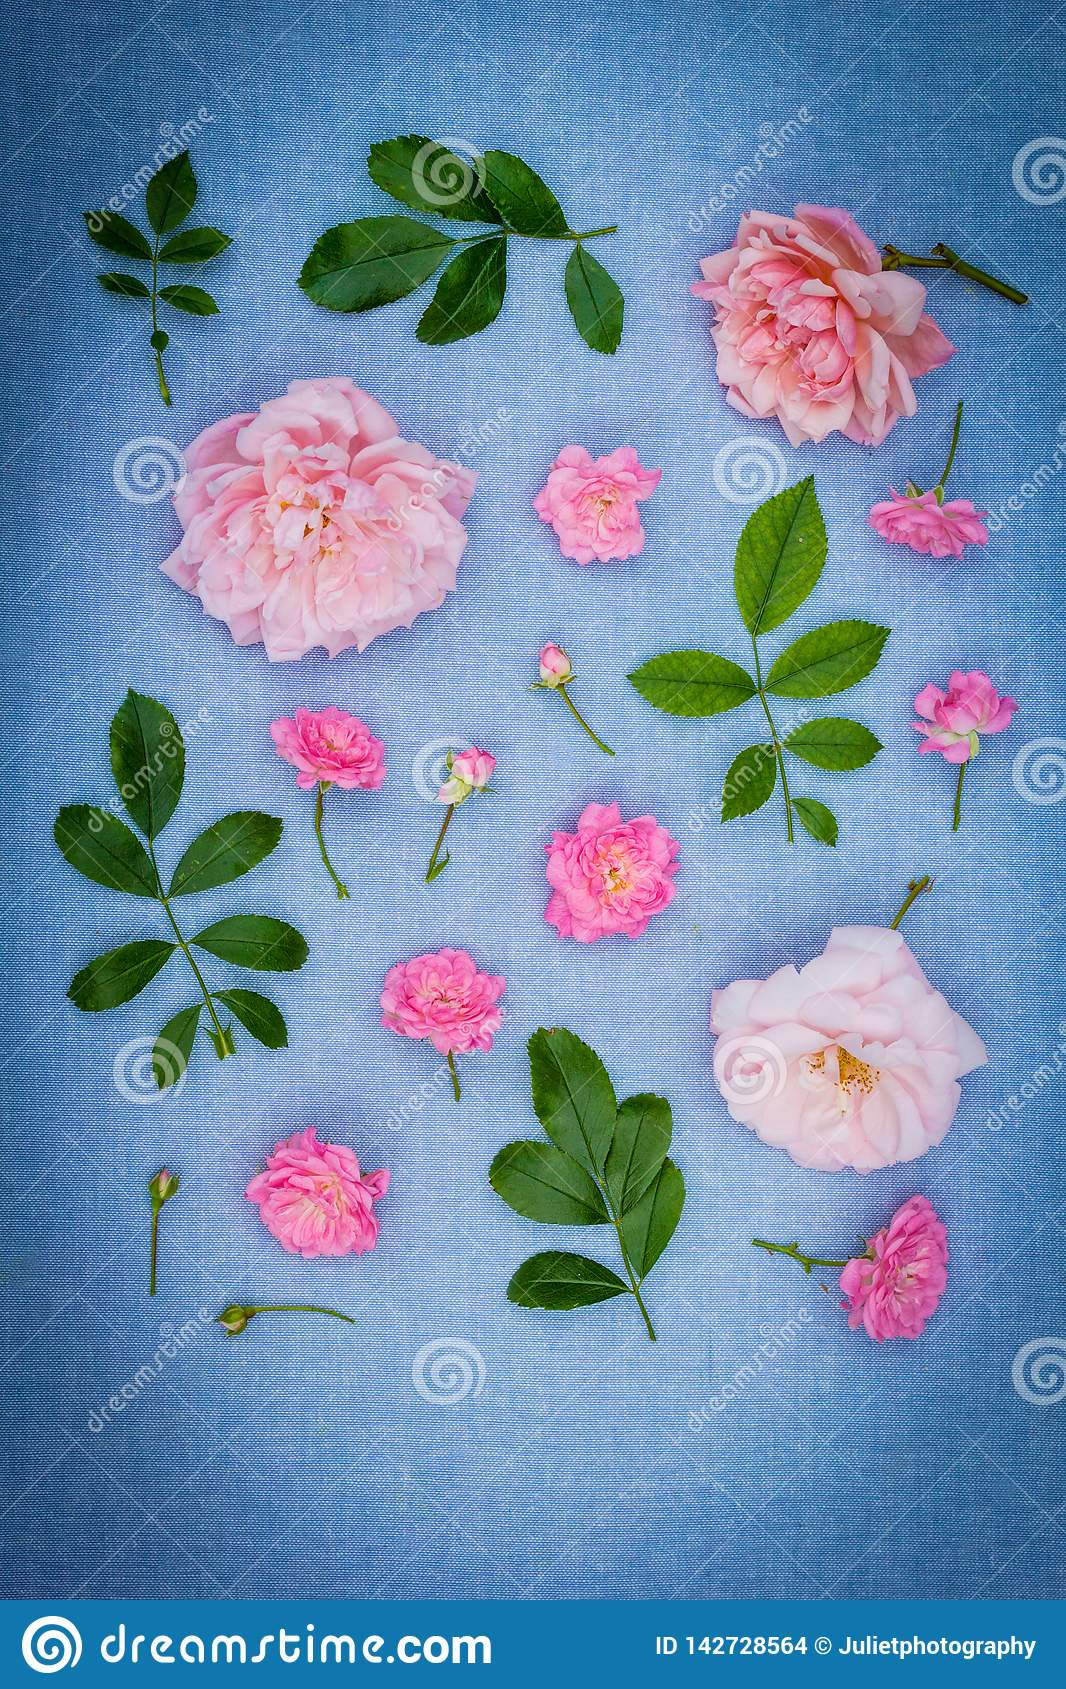 Beautifu, romantic, floral background with pink roses on blue, fabric background stock images